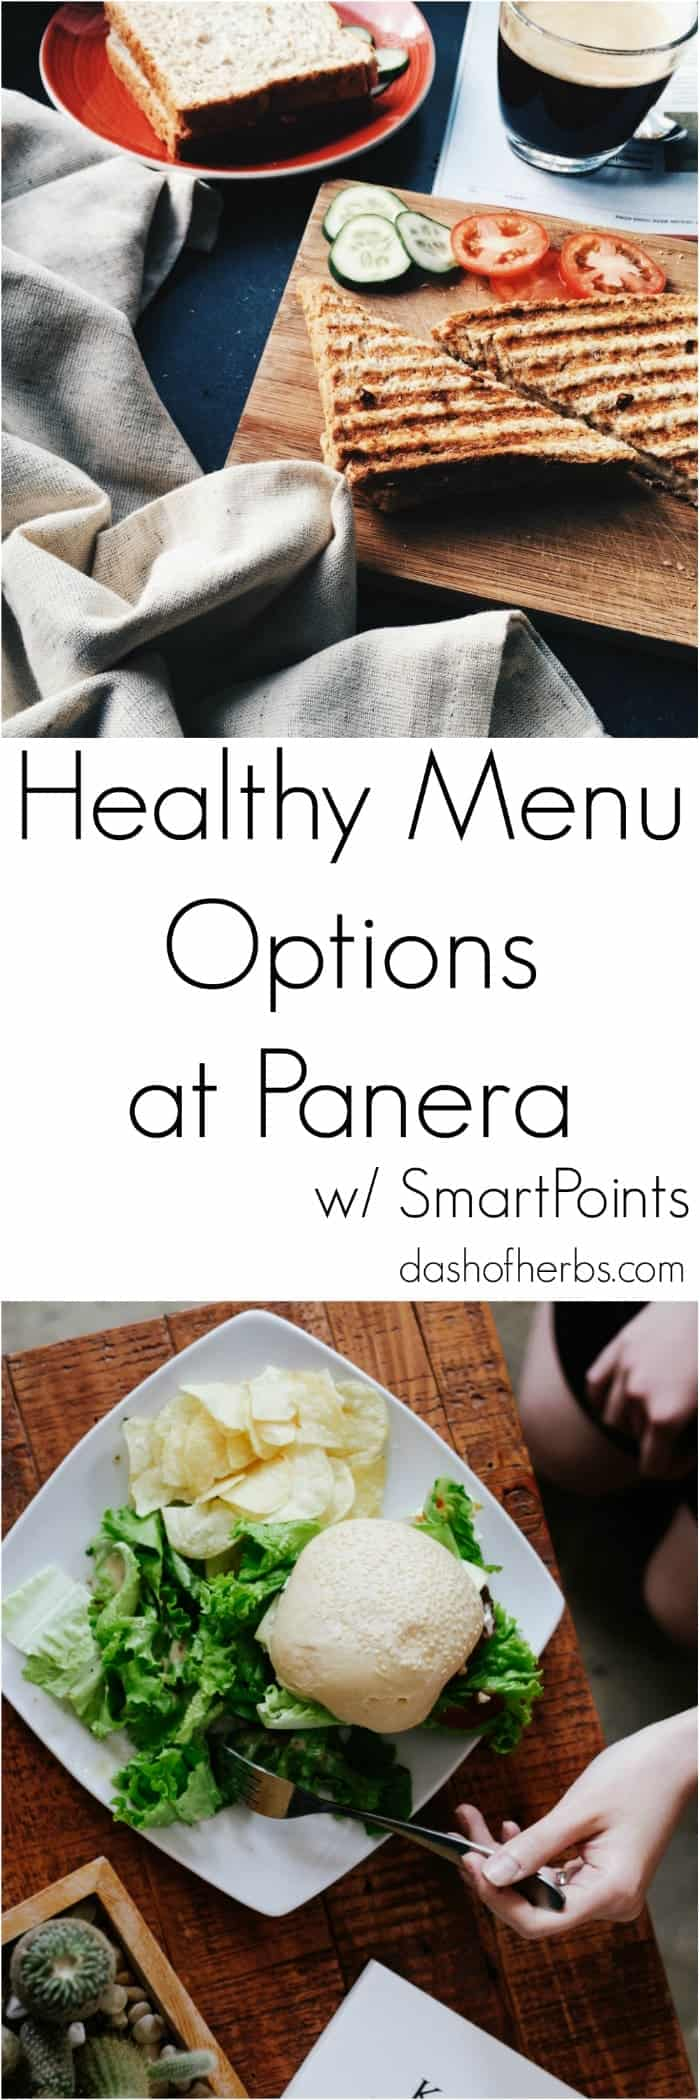 Healthy Menu Options at Panera Bread